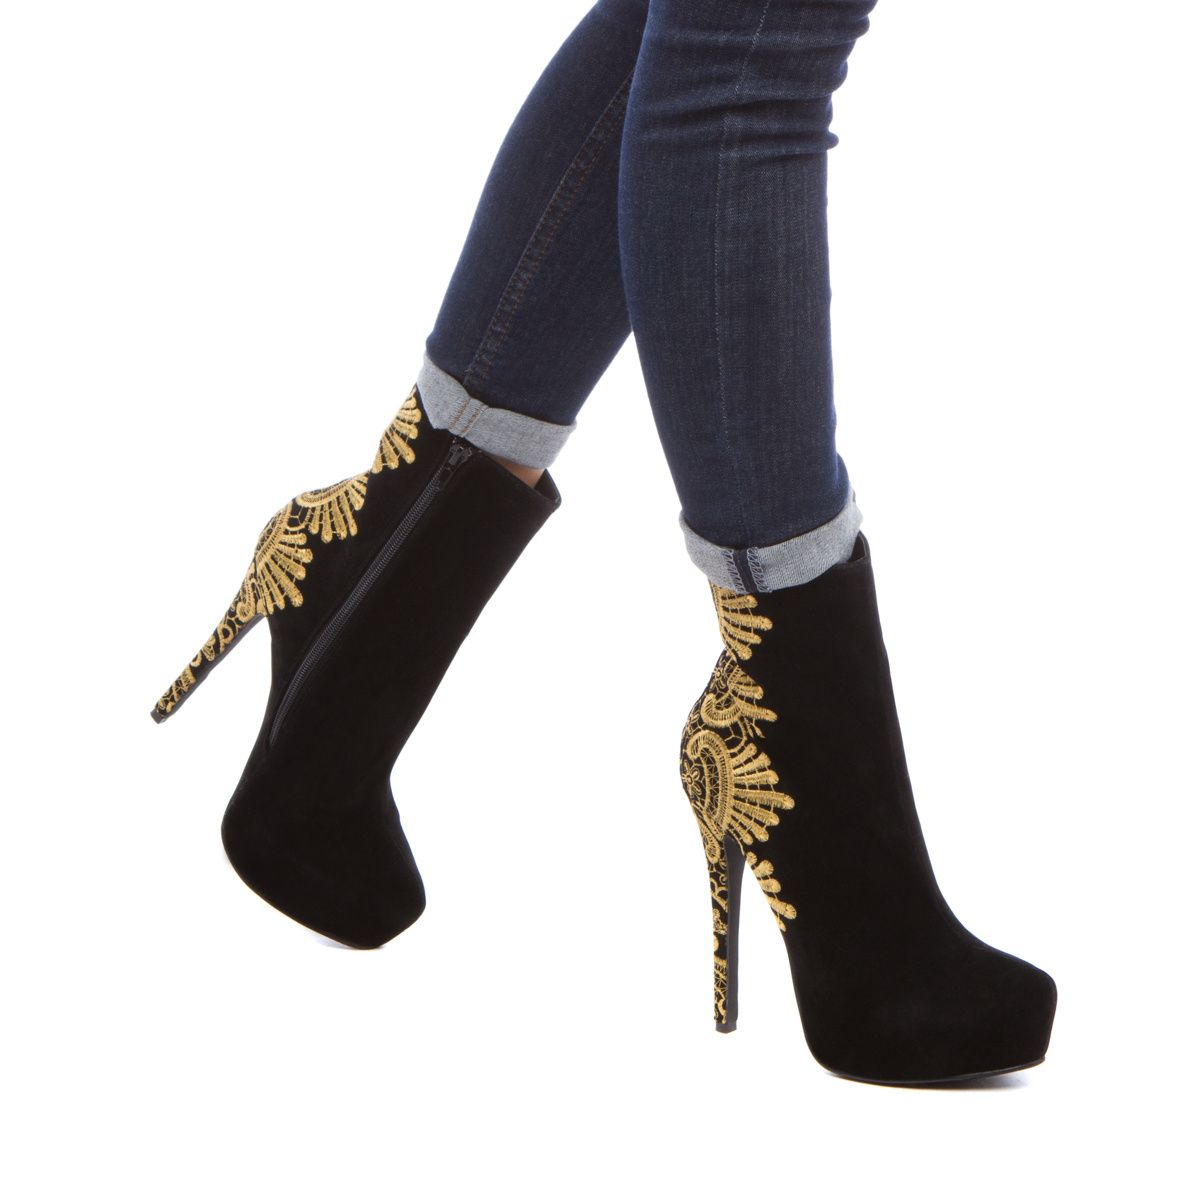 Alona - Hot boots for the chilly season #clicktoget #giftsforher